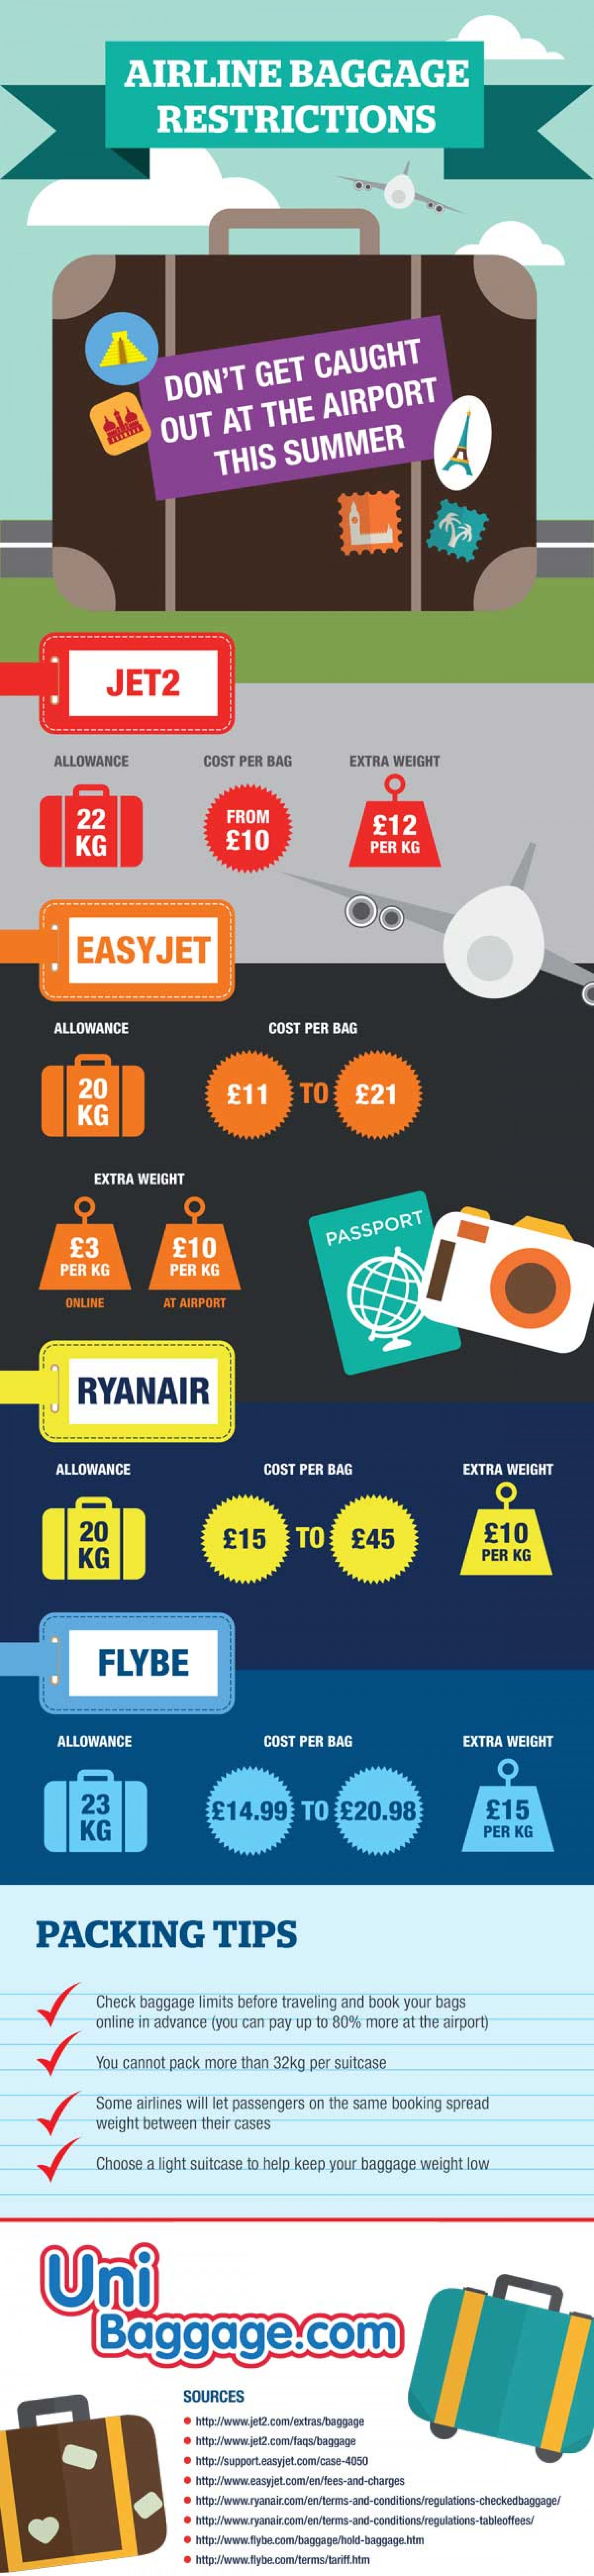 Airline Baggage Restrictions Infographic